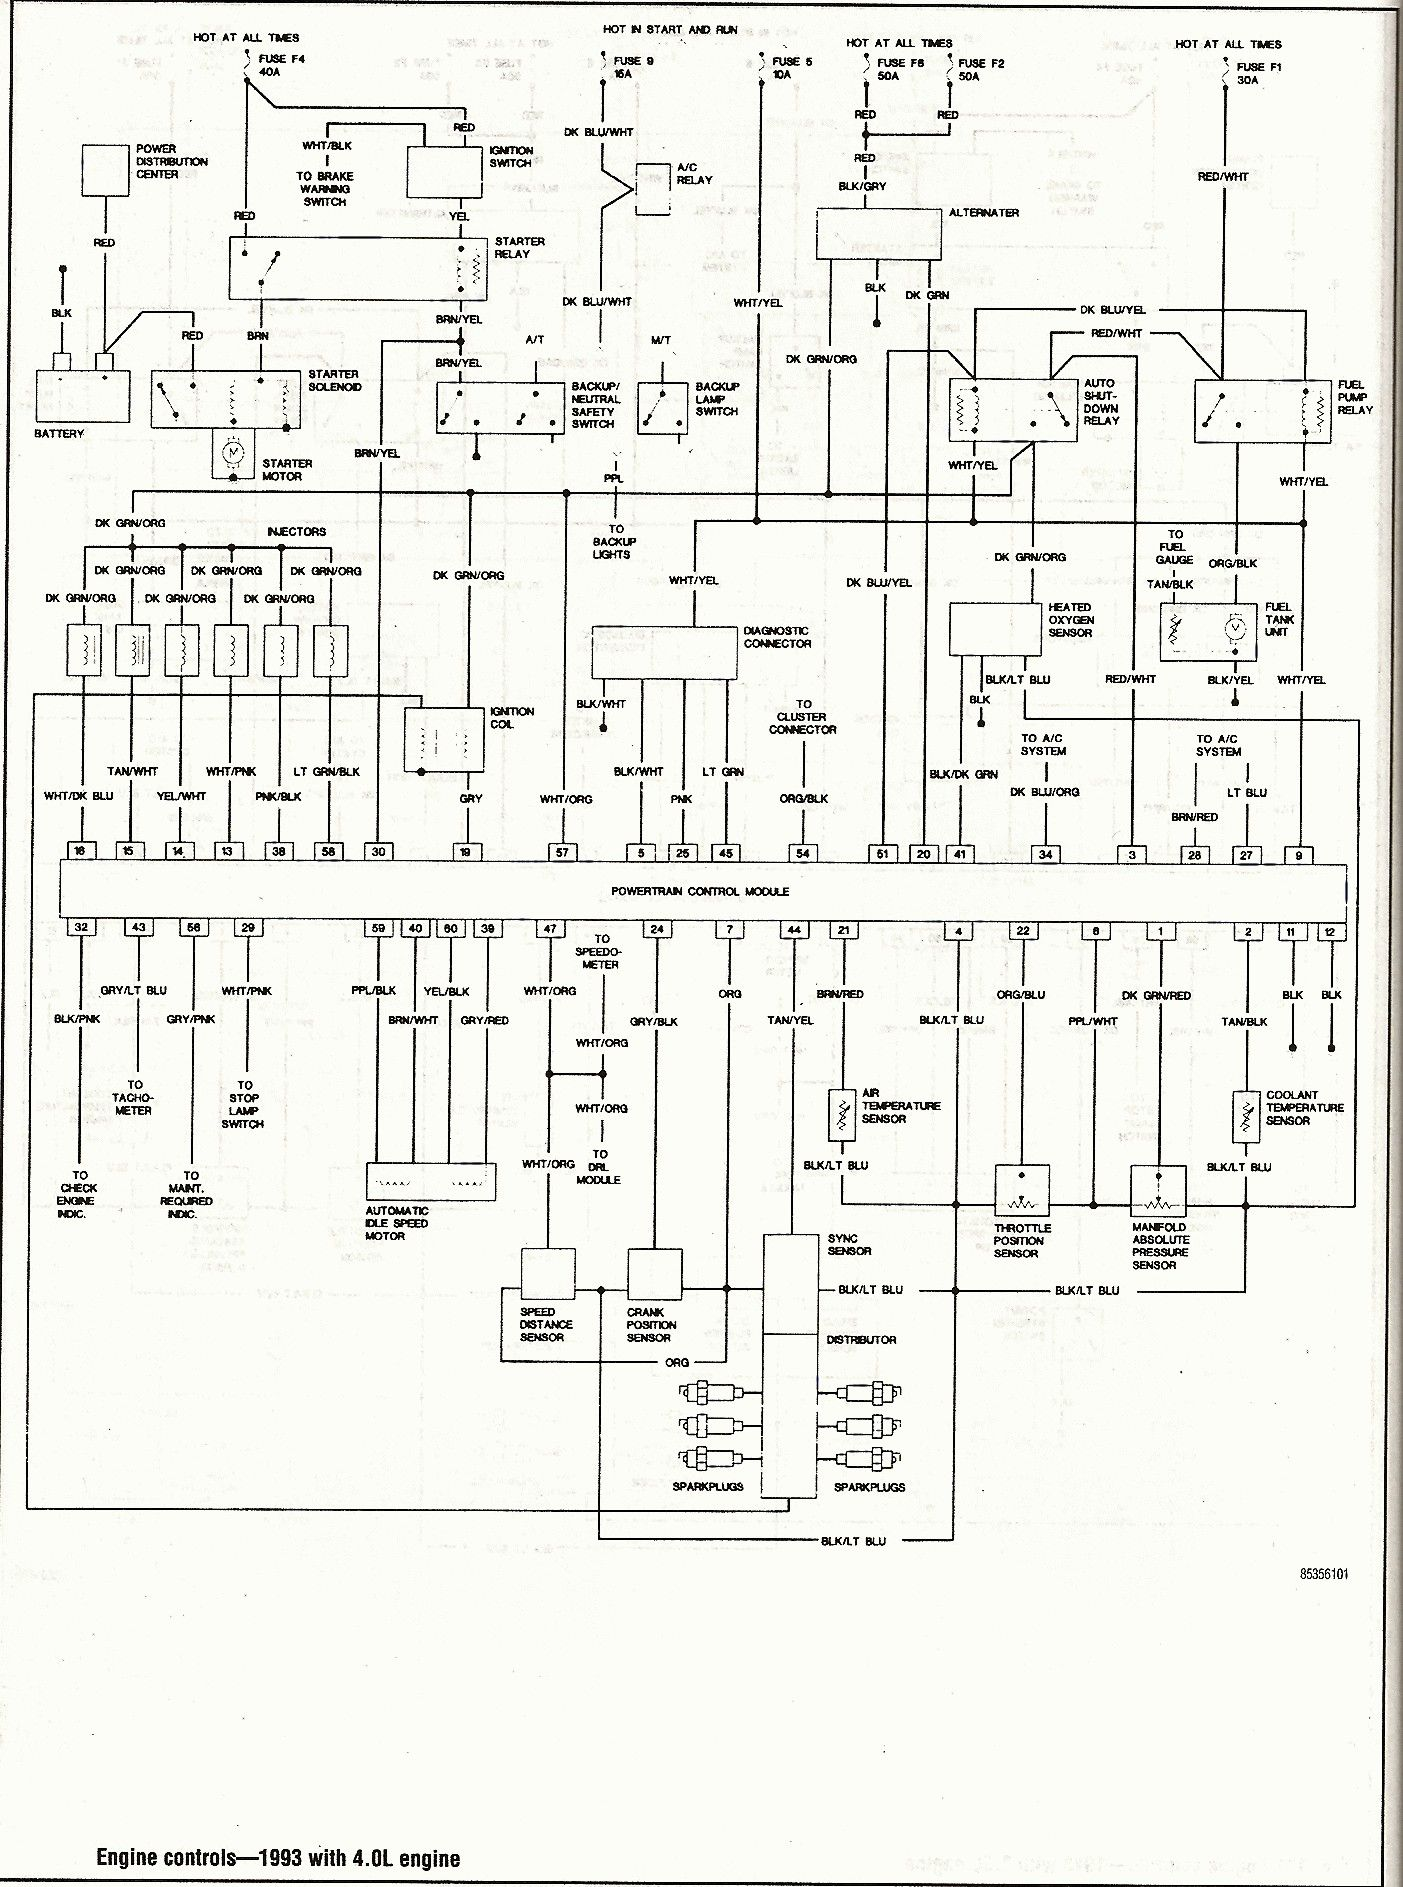 [DIAGRAM] 2002 Pt Cruiser Pin 85 Wiring Diagram FULL